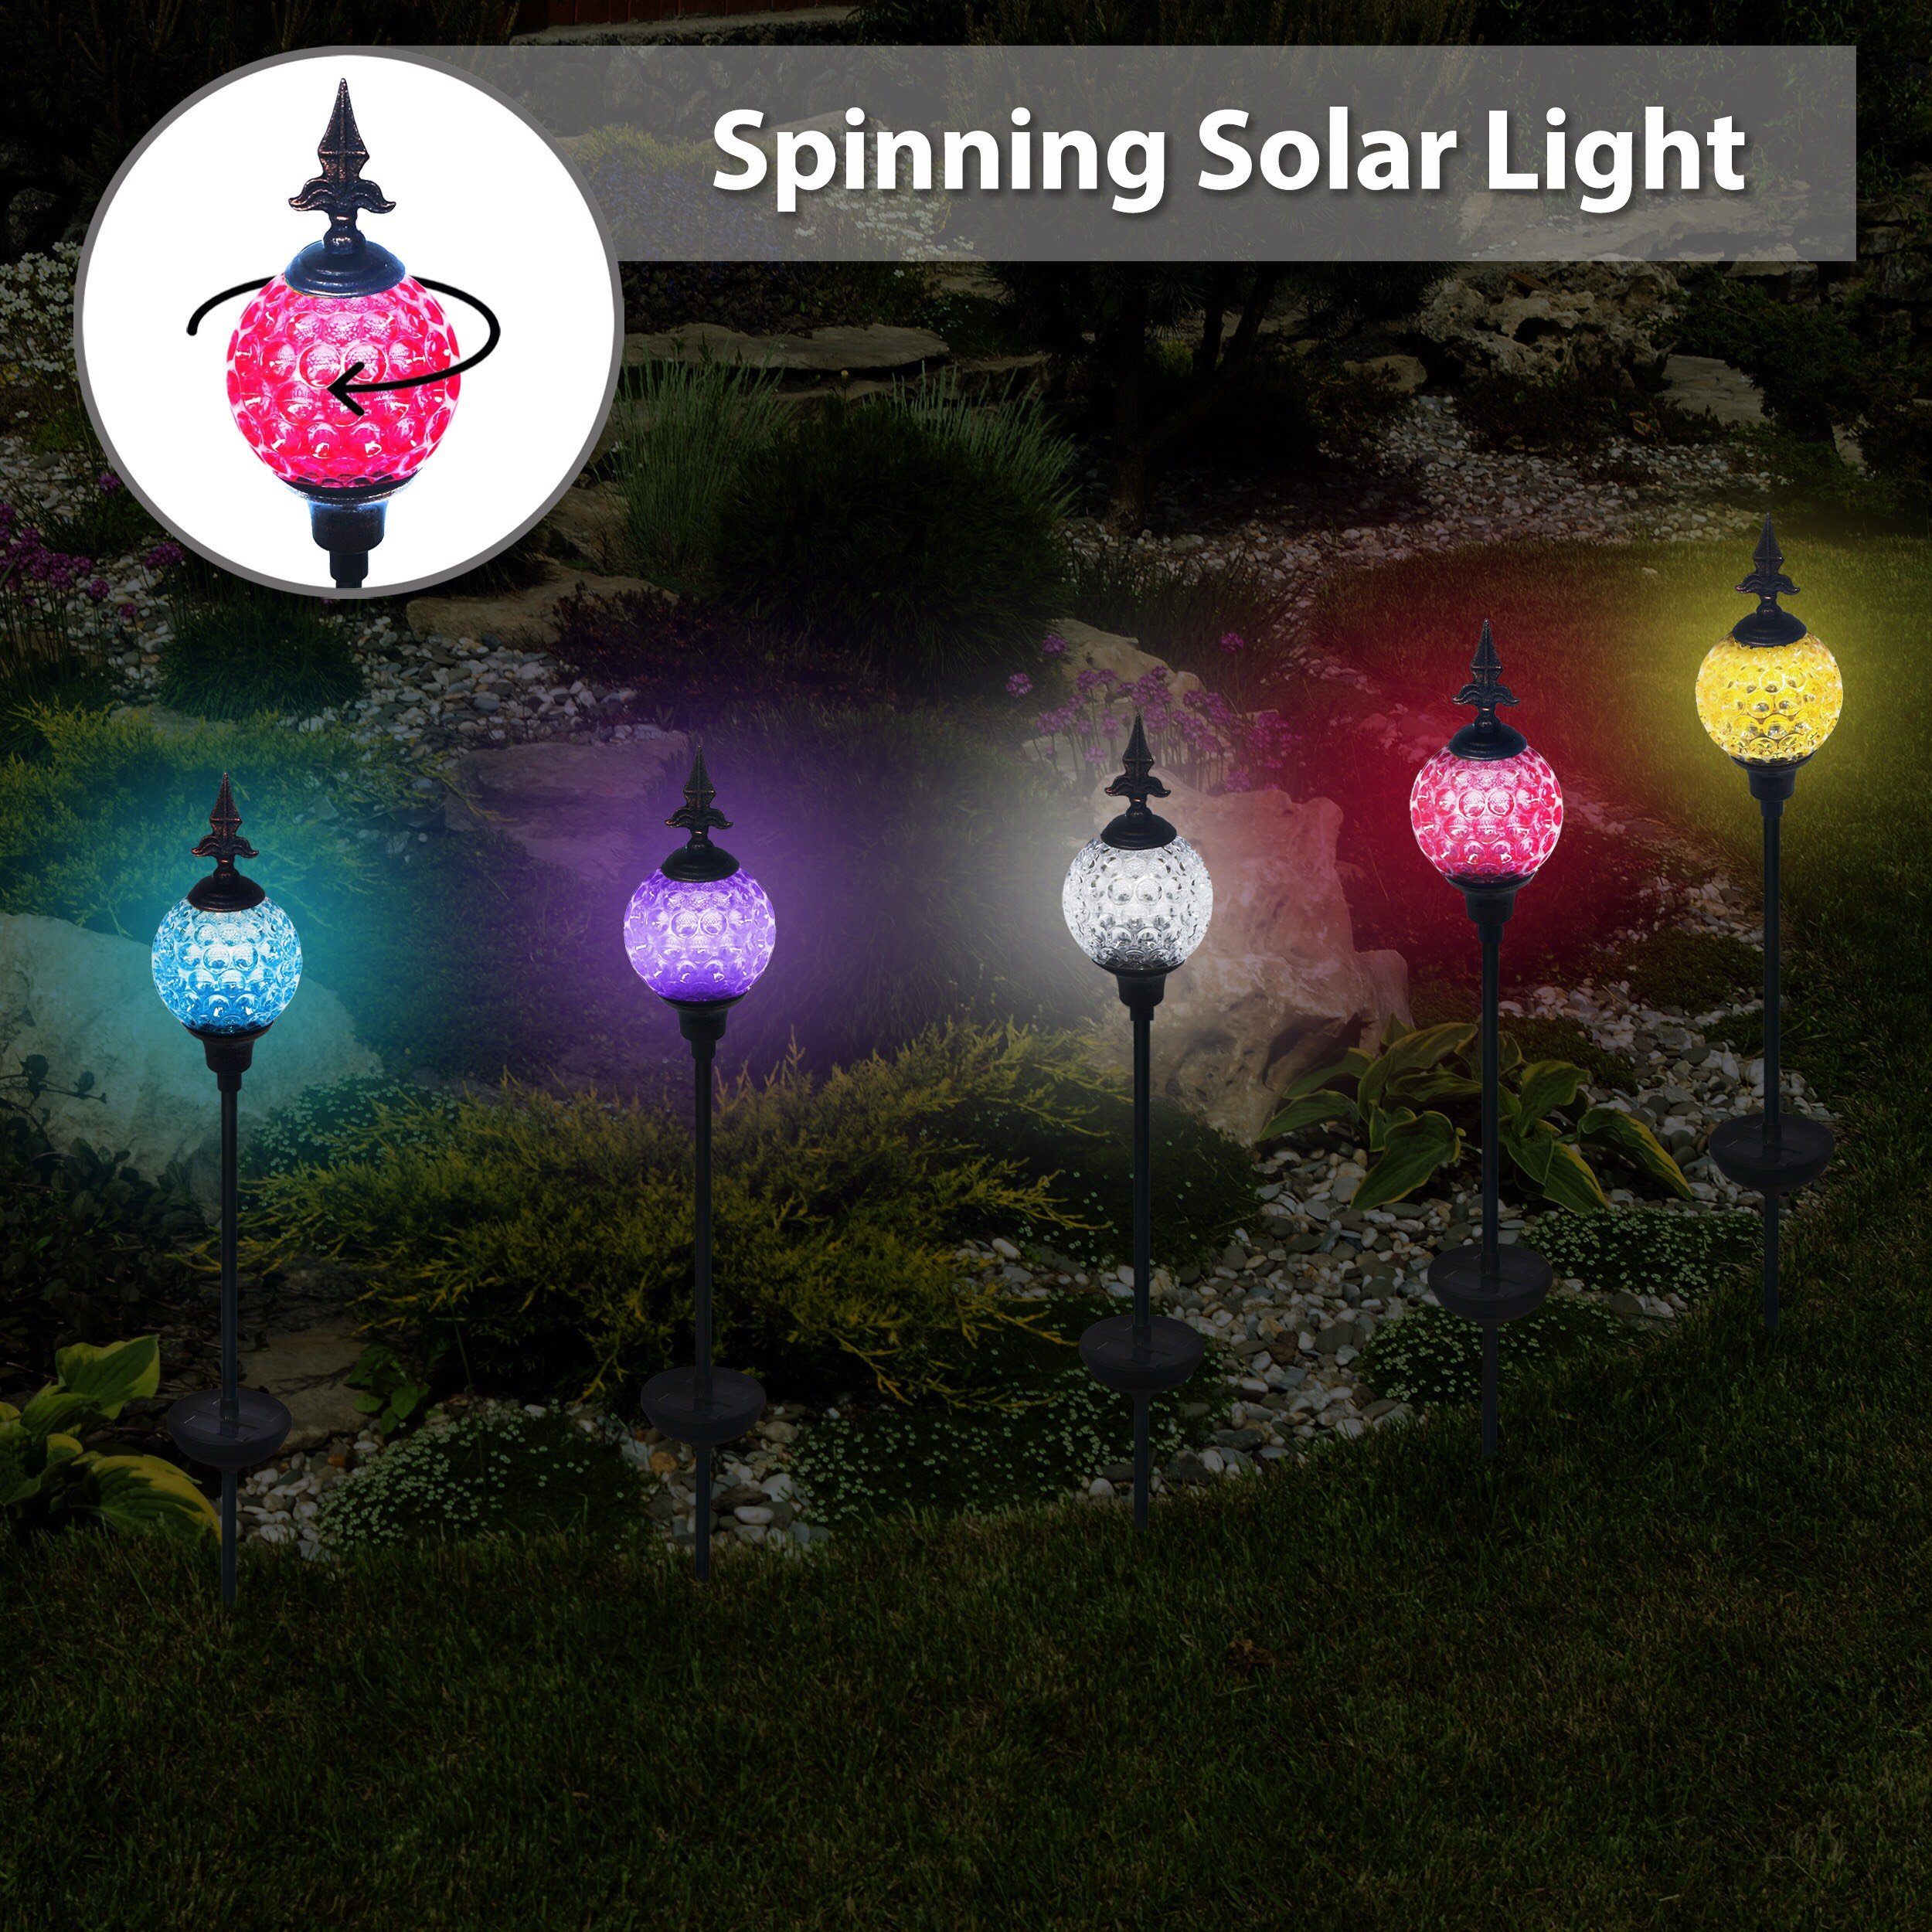 Solario Crackle Ball Solar Lights with Spinning Ball & Decorative Copper Top   Heavy Duty Stainless Steel Stakes   Color Changing Stake Lamps   Accent Lighting for Garden/ Yard/ Driveway (3 Pack)